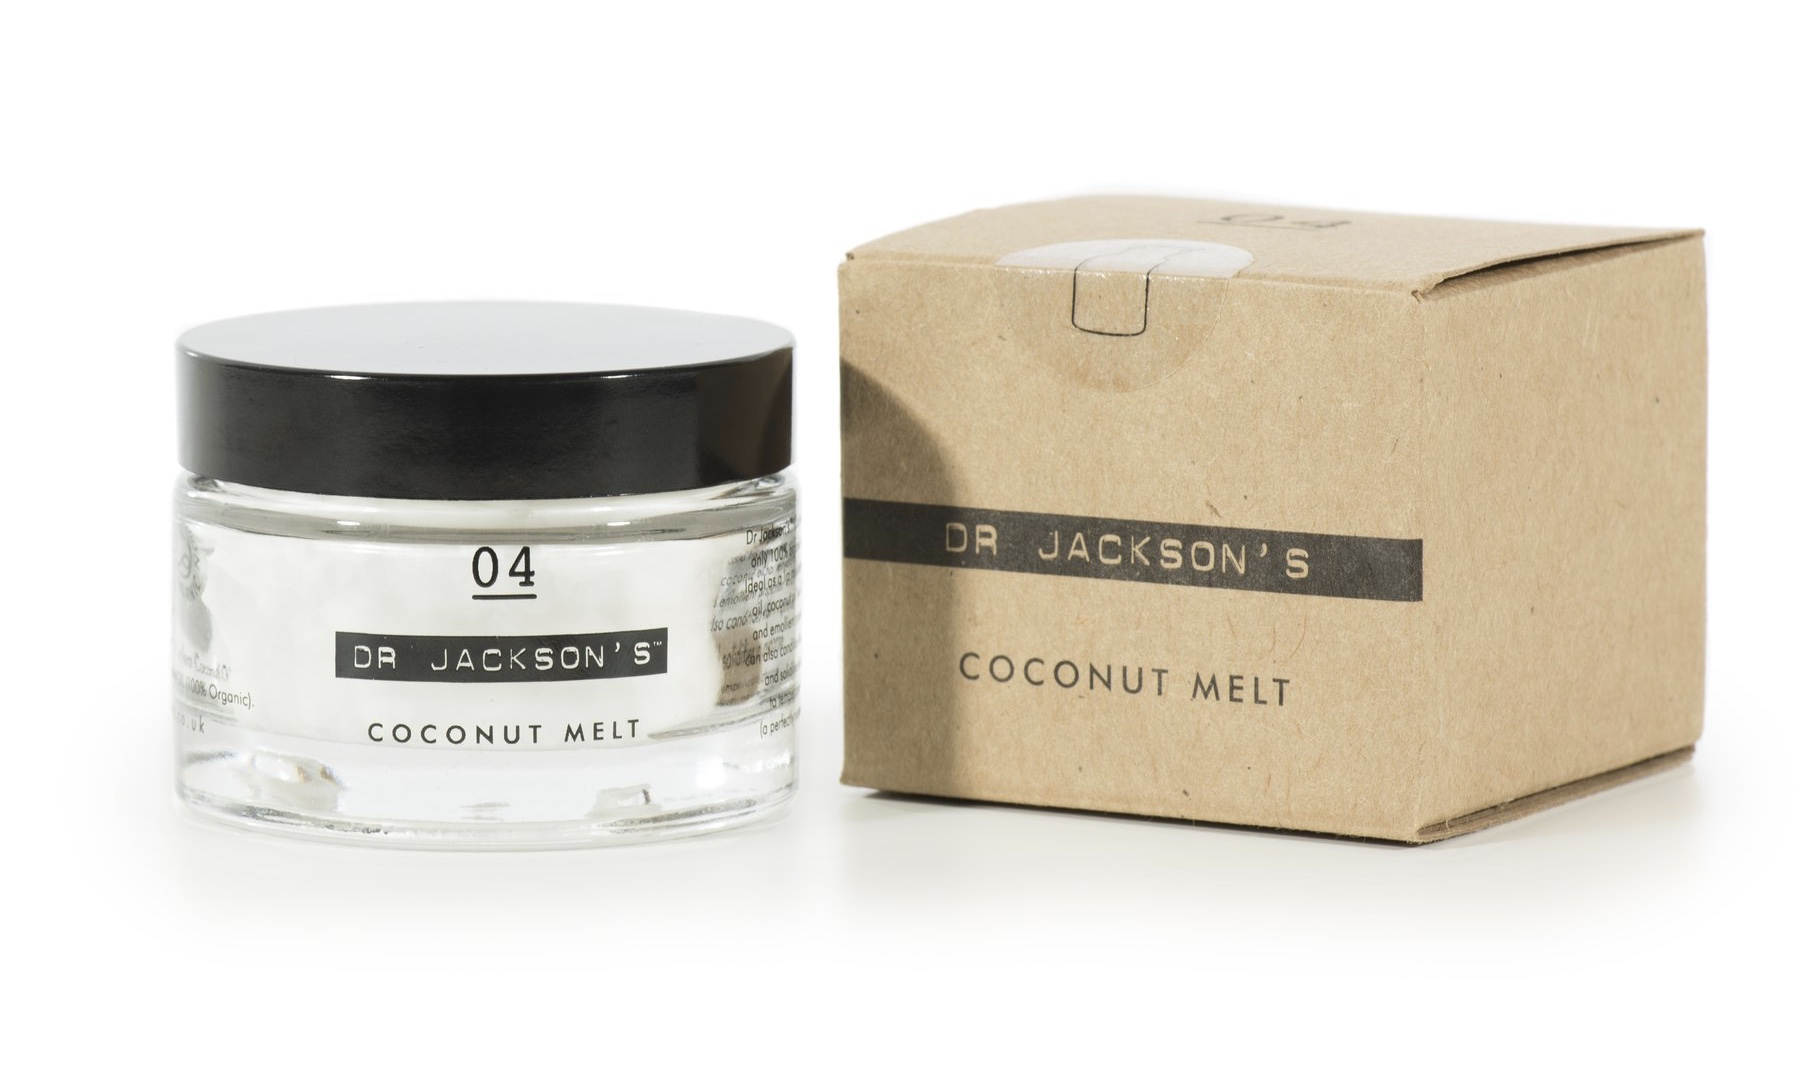 Dr Jacksons Coconut Melt